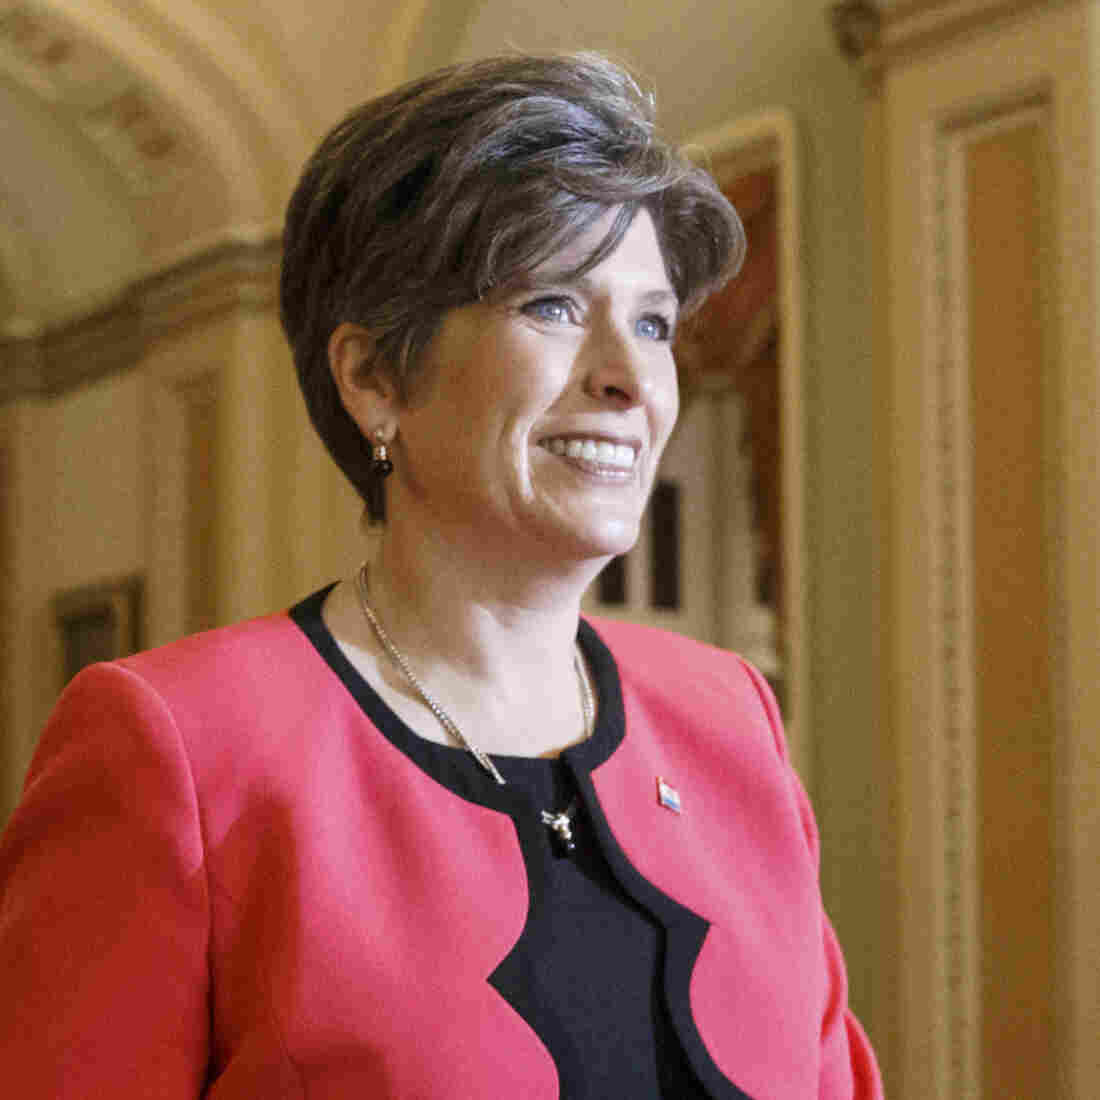 Iowa's Sen. Ernst Grabs Spotlight That's Often Proven Too Hot